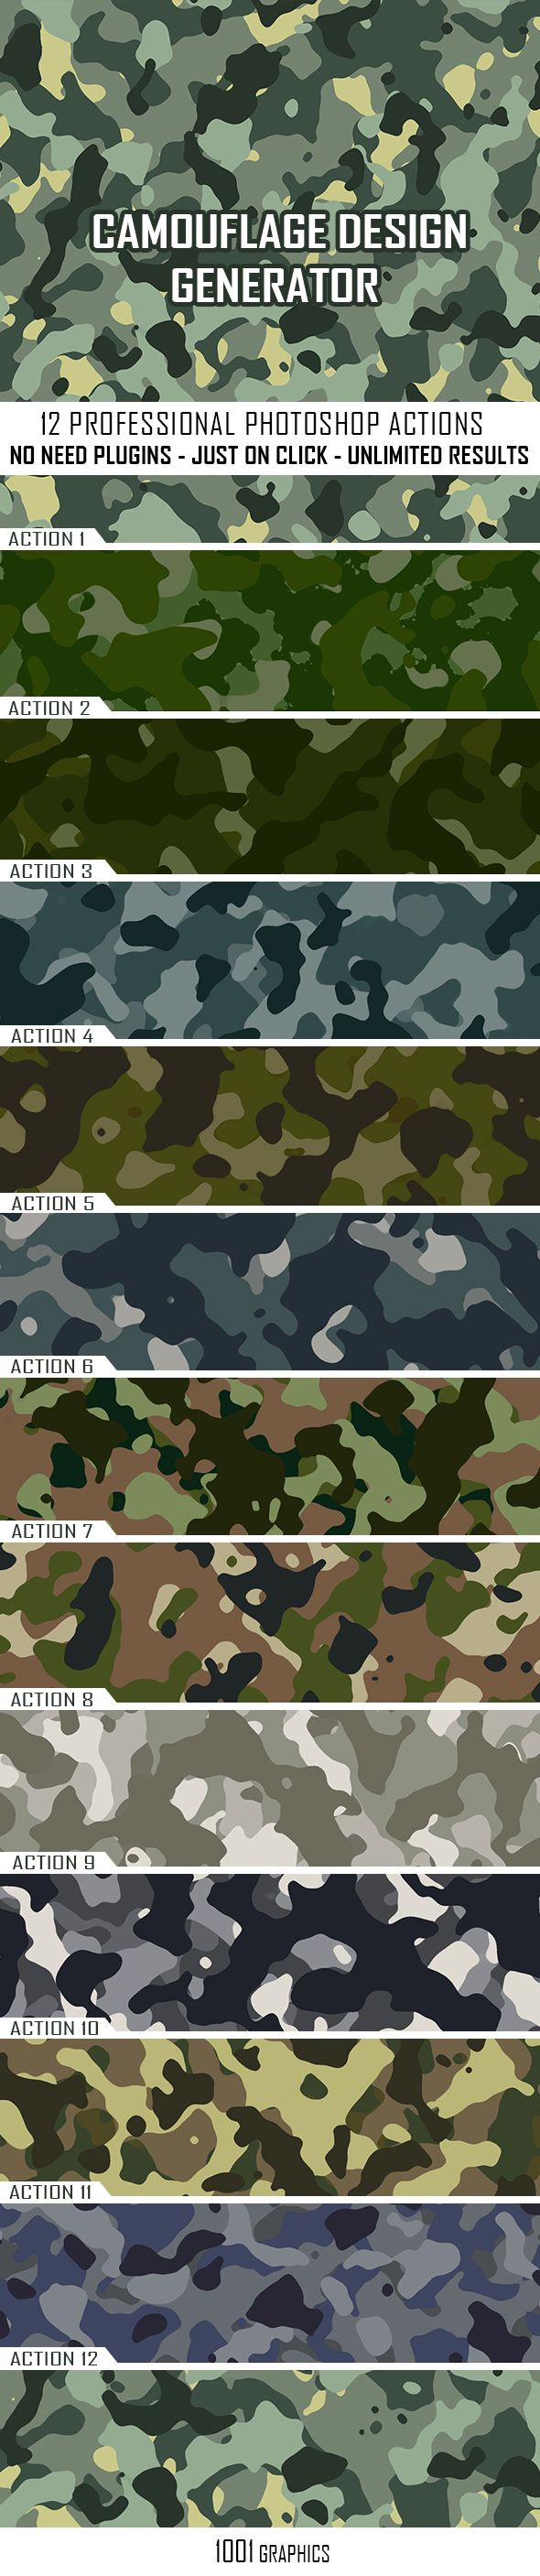 Camouflage Texture Generator - 12 PS Actions Vol 1